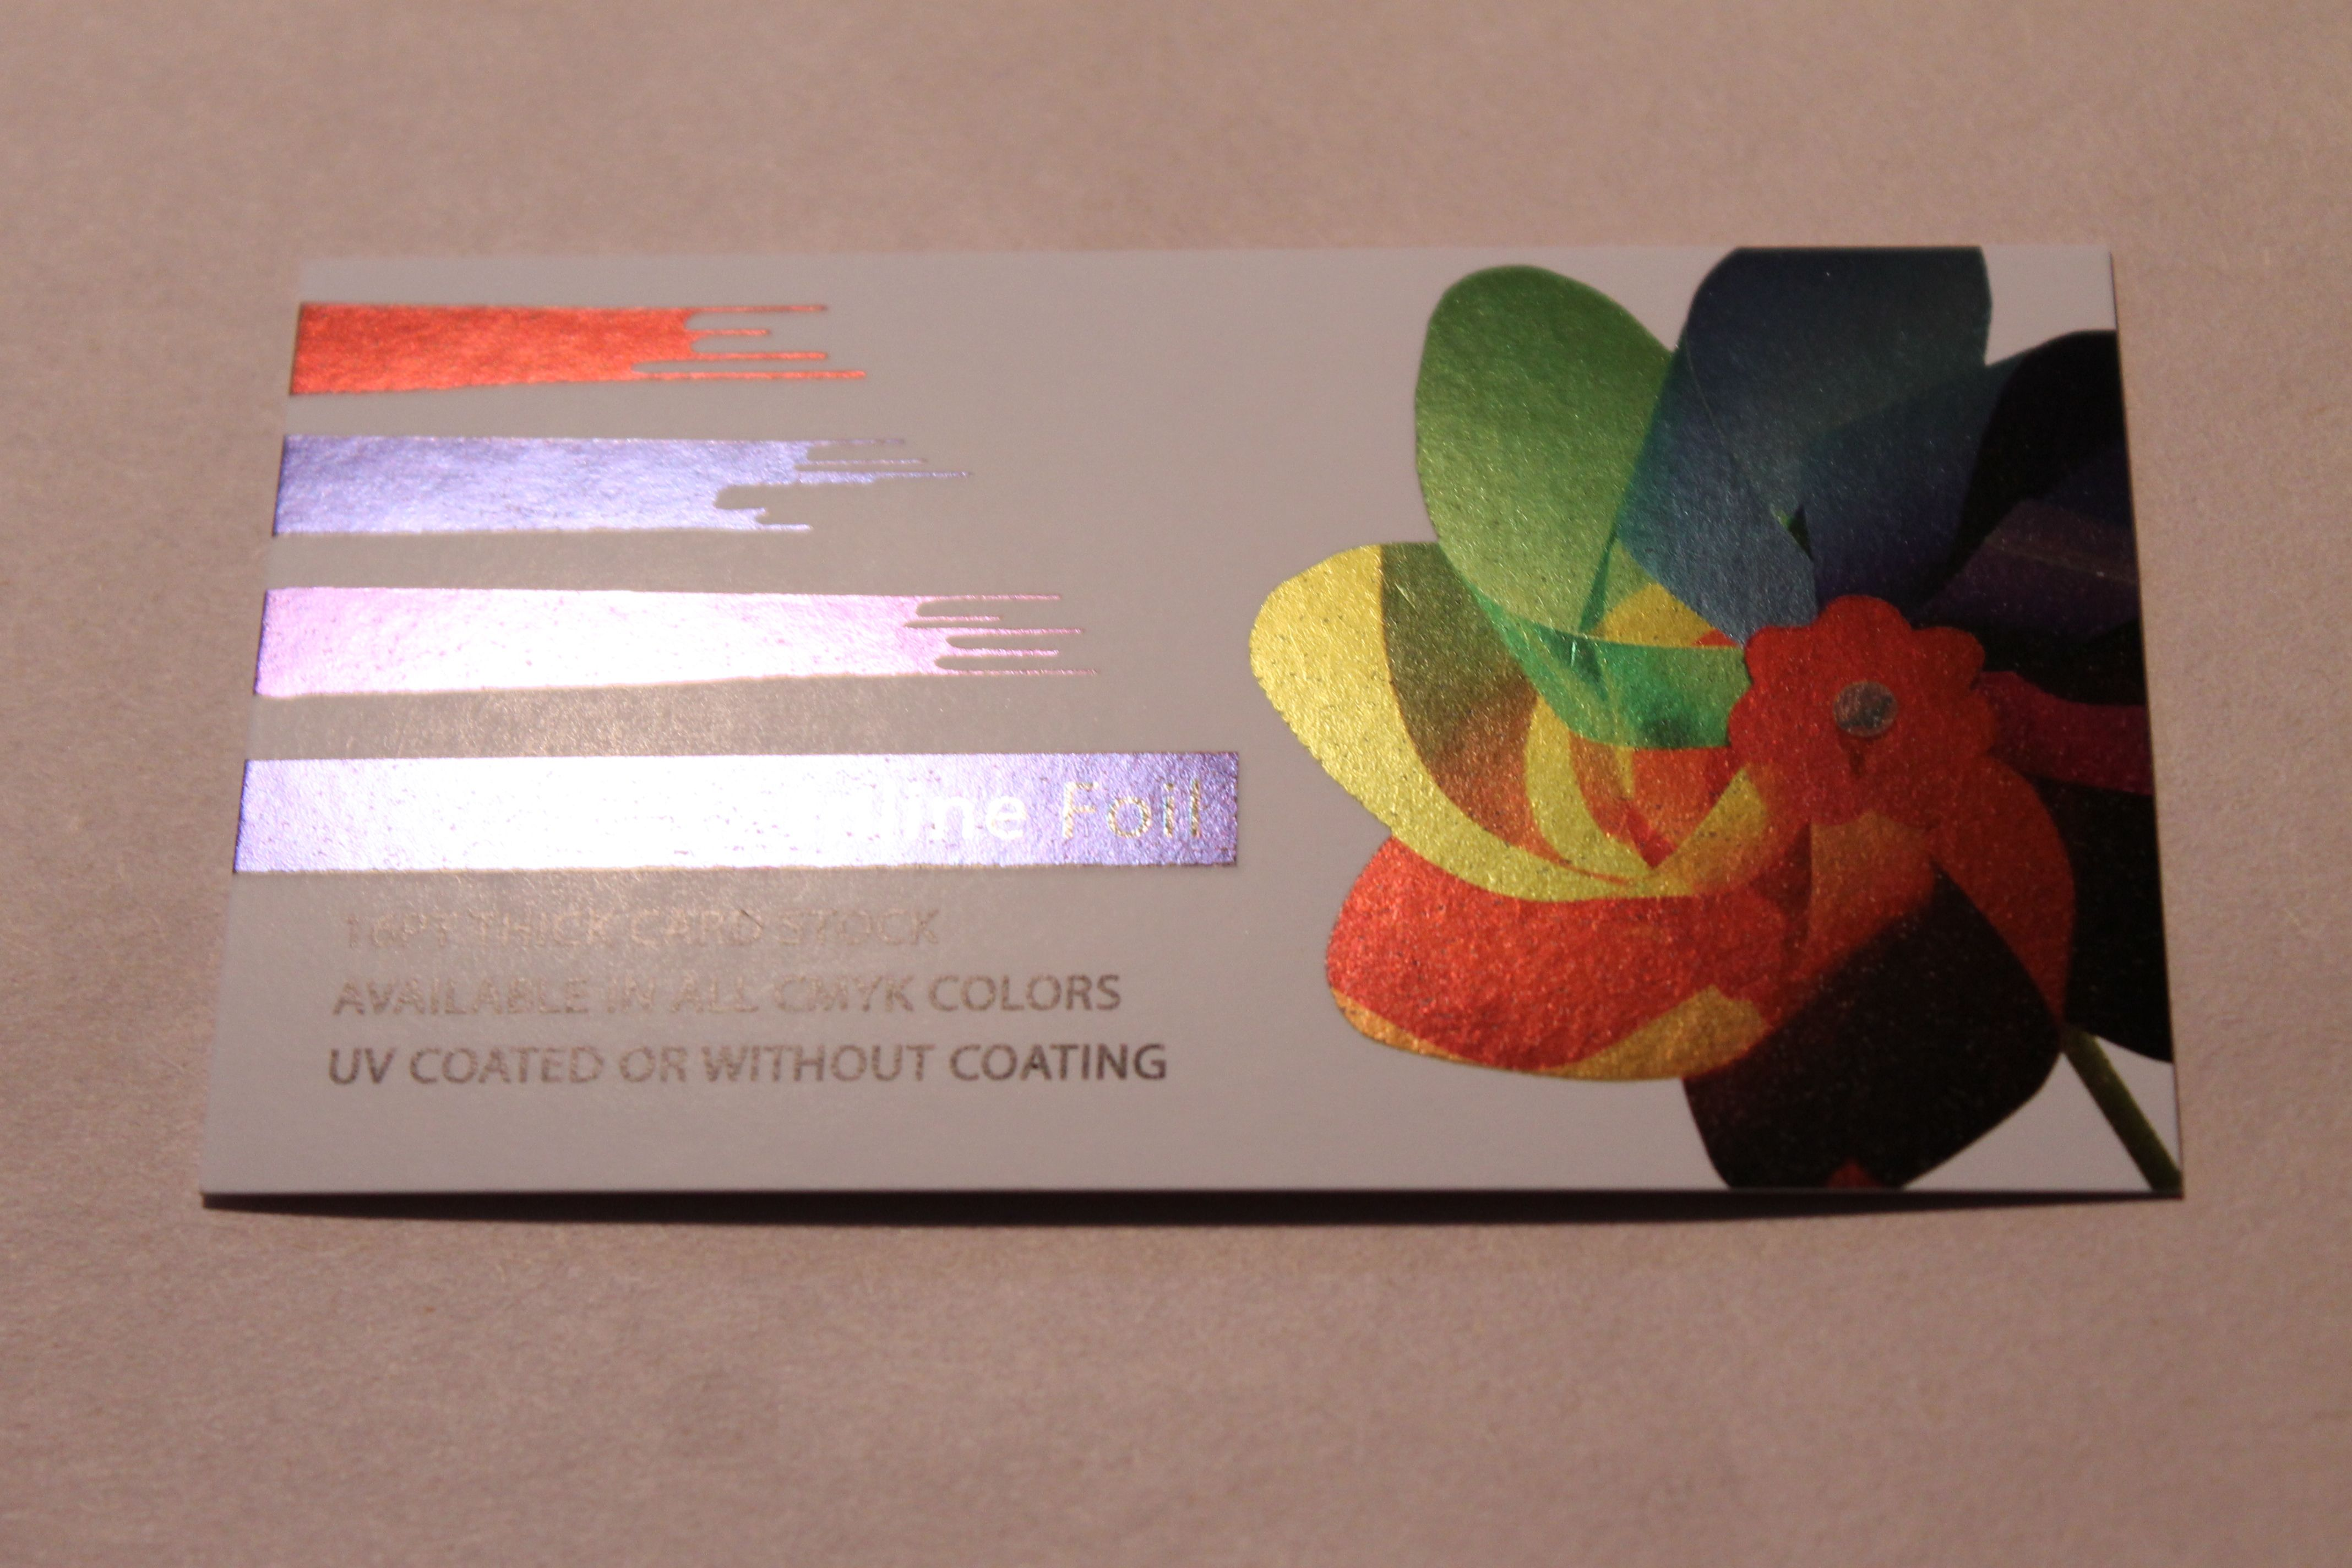 inline foil 16 pt thick card stock with uv coating